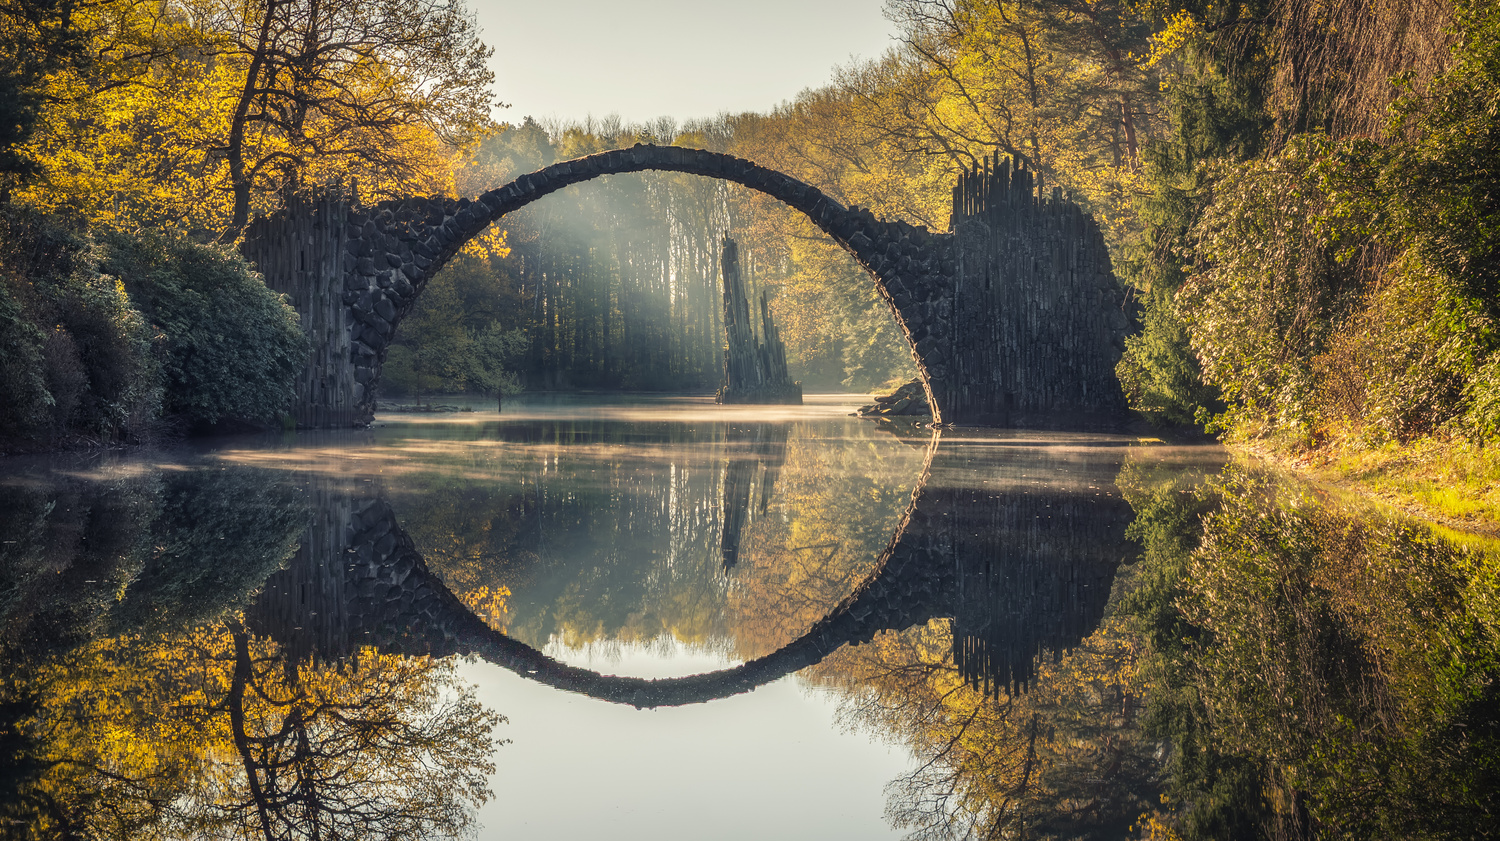 A Paradise in Nature: The Rakotz Bridge. by Lukas Petereit